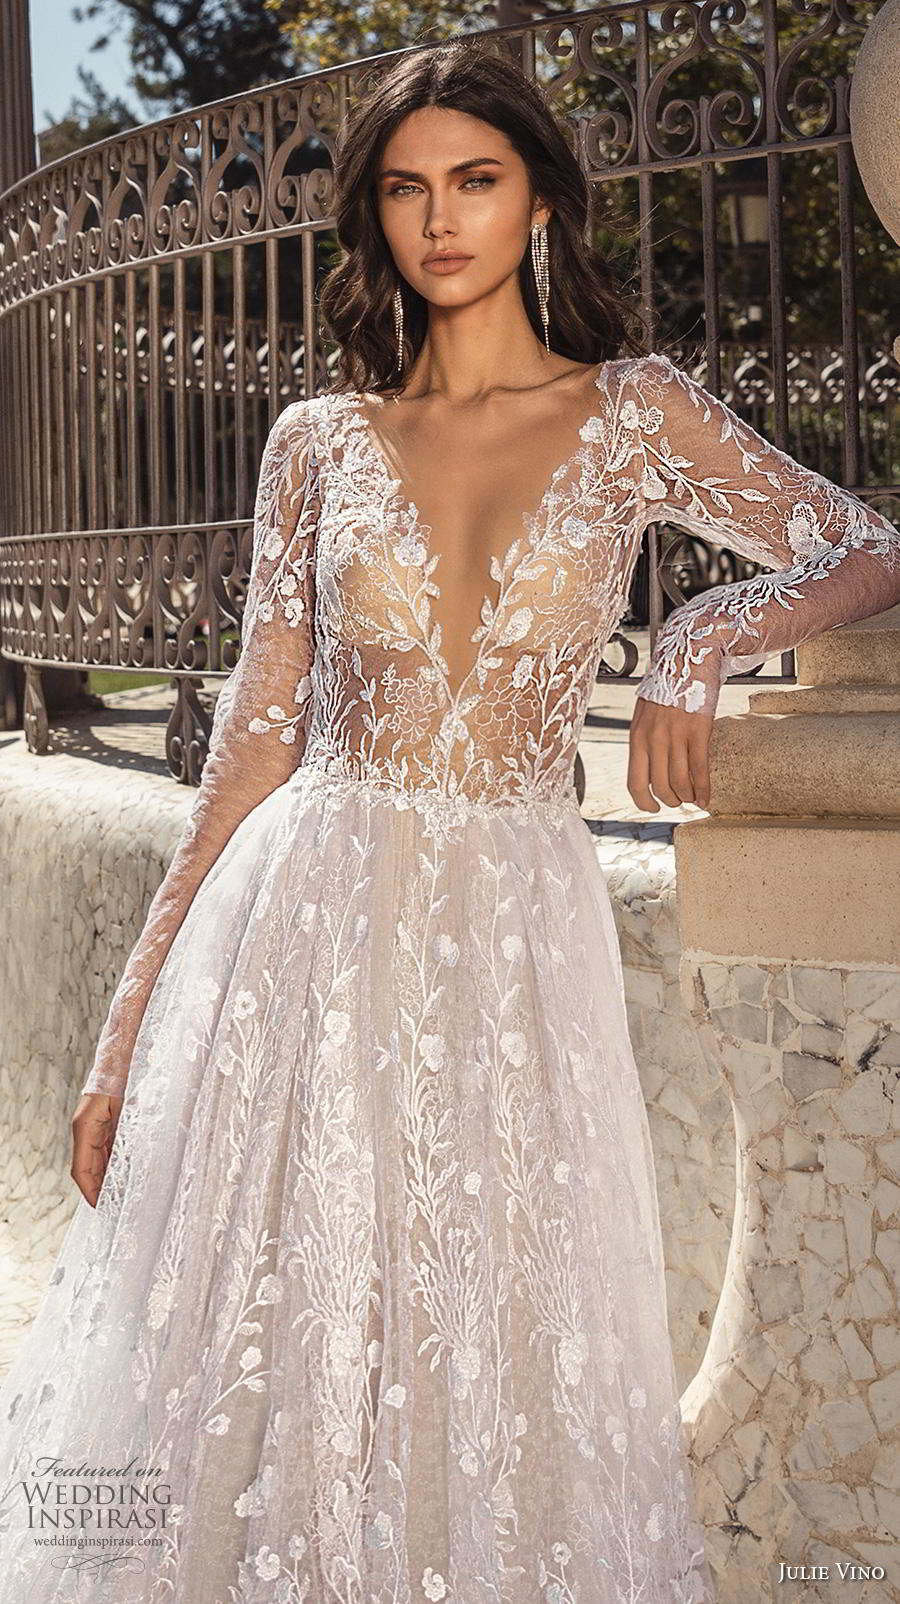 julie vino 2020 barcelona bridal long sleeves deep v neck full embellishment romantic a  line wedding dress backless low back chapel train (12) zv